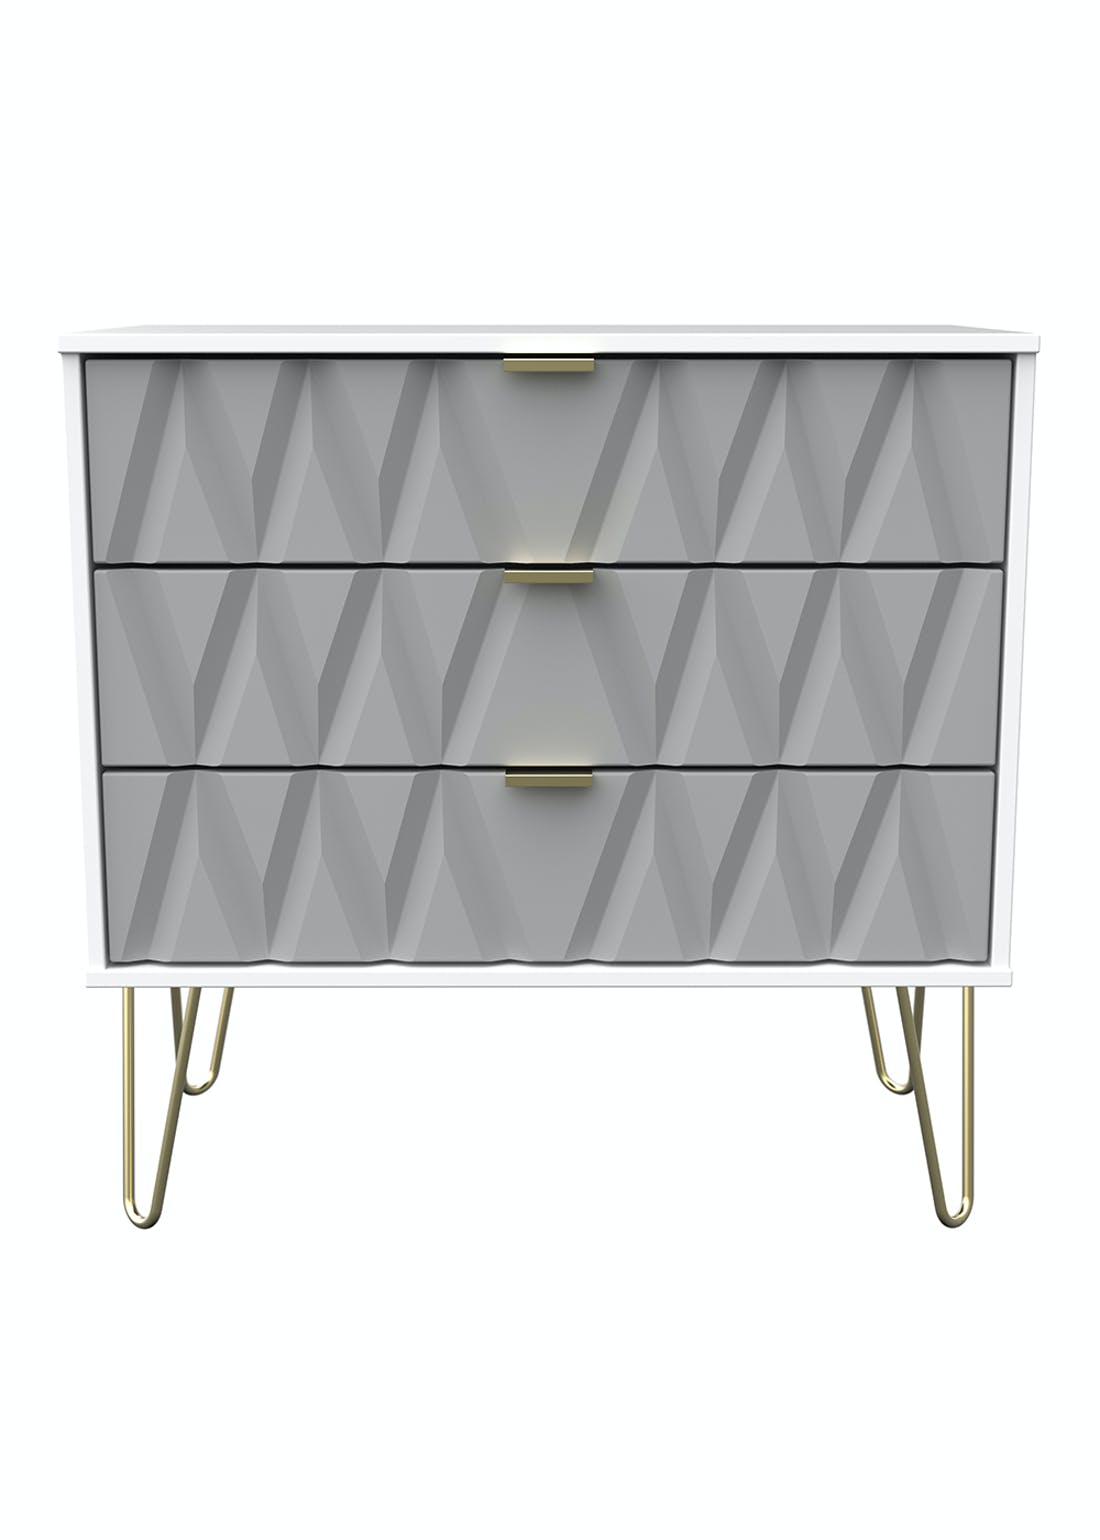 Swift Prism 3 Drawer Chest (74cm x 76.5cm x 39.5cm)